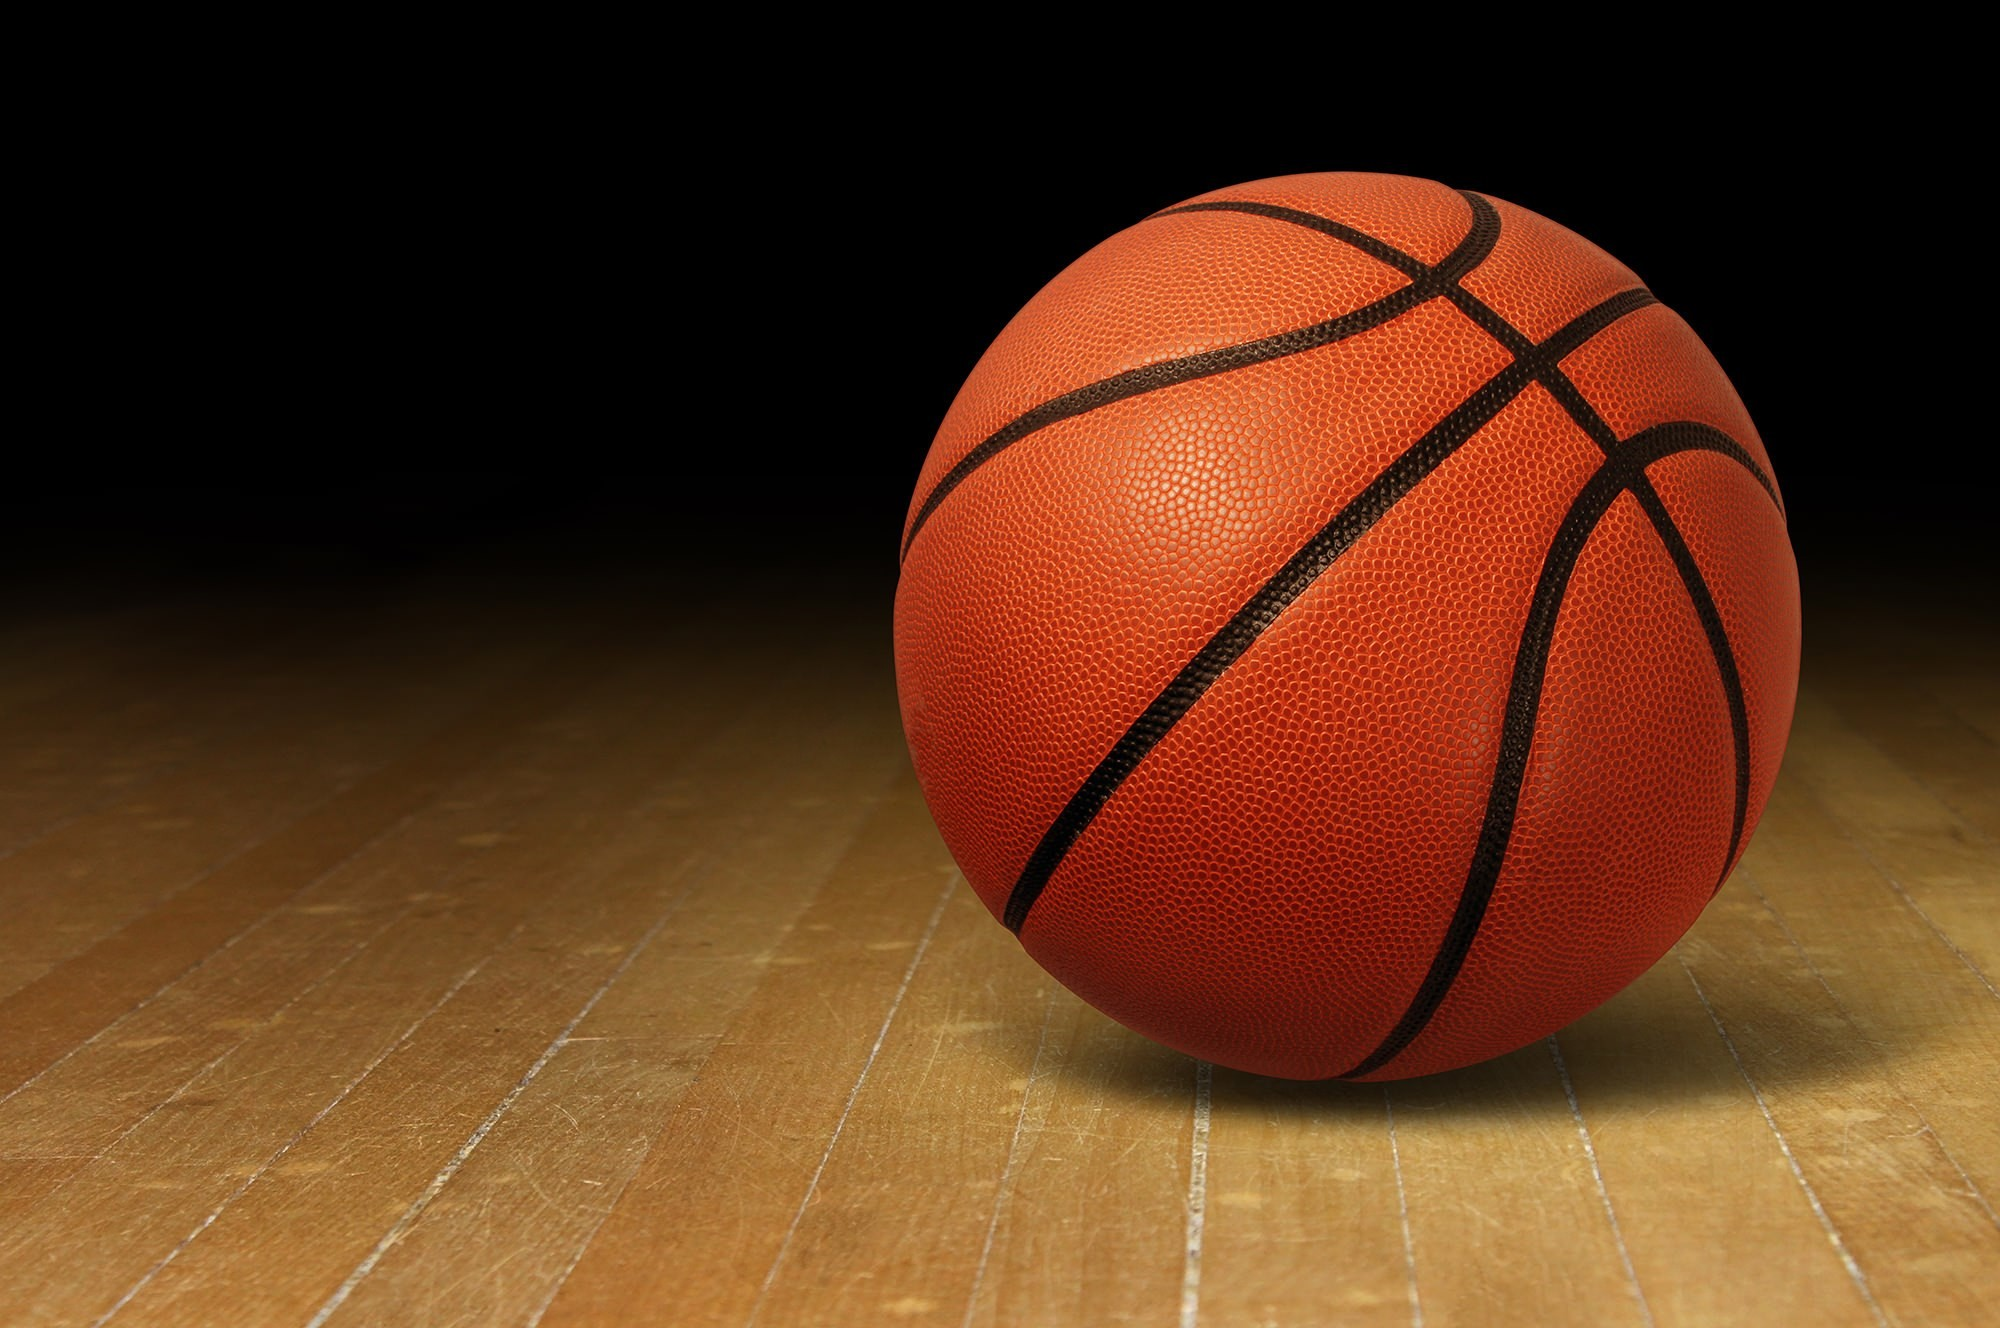 Basketball background download free beautiful - Ball image download ...